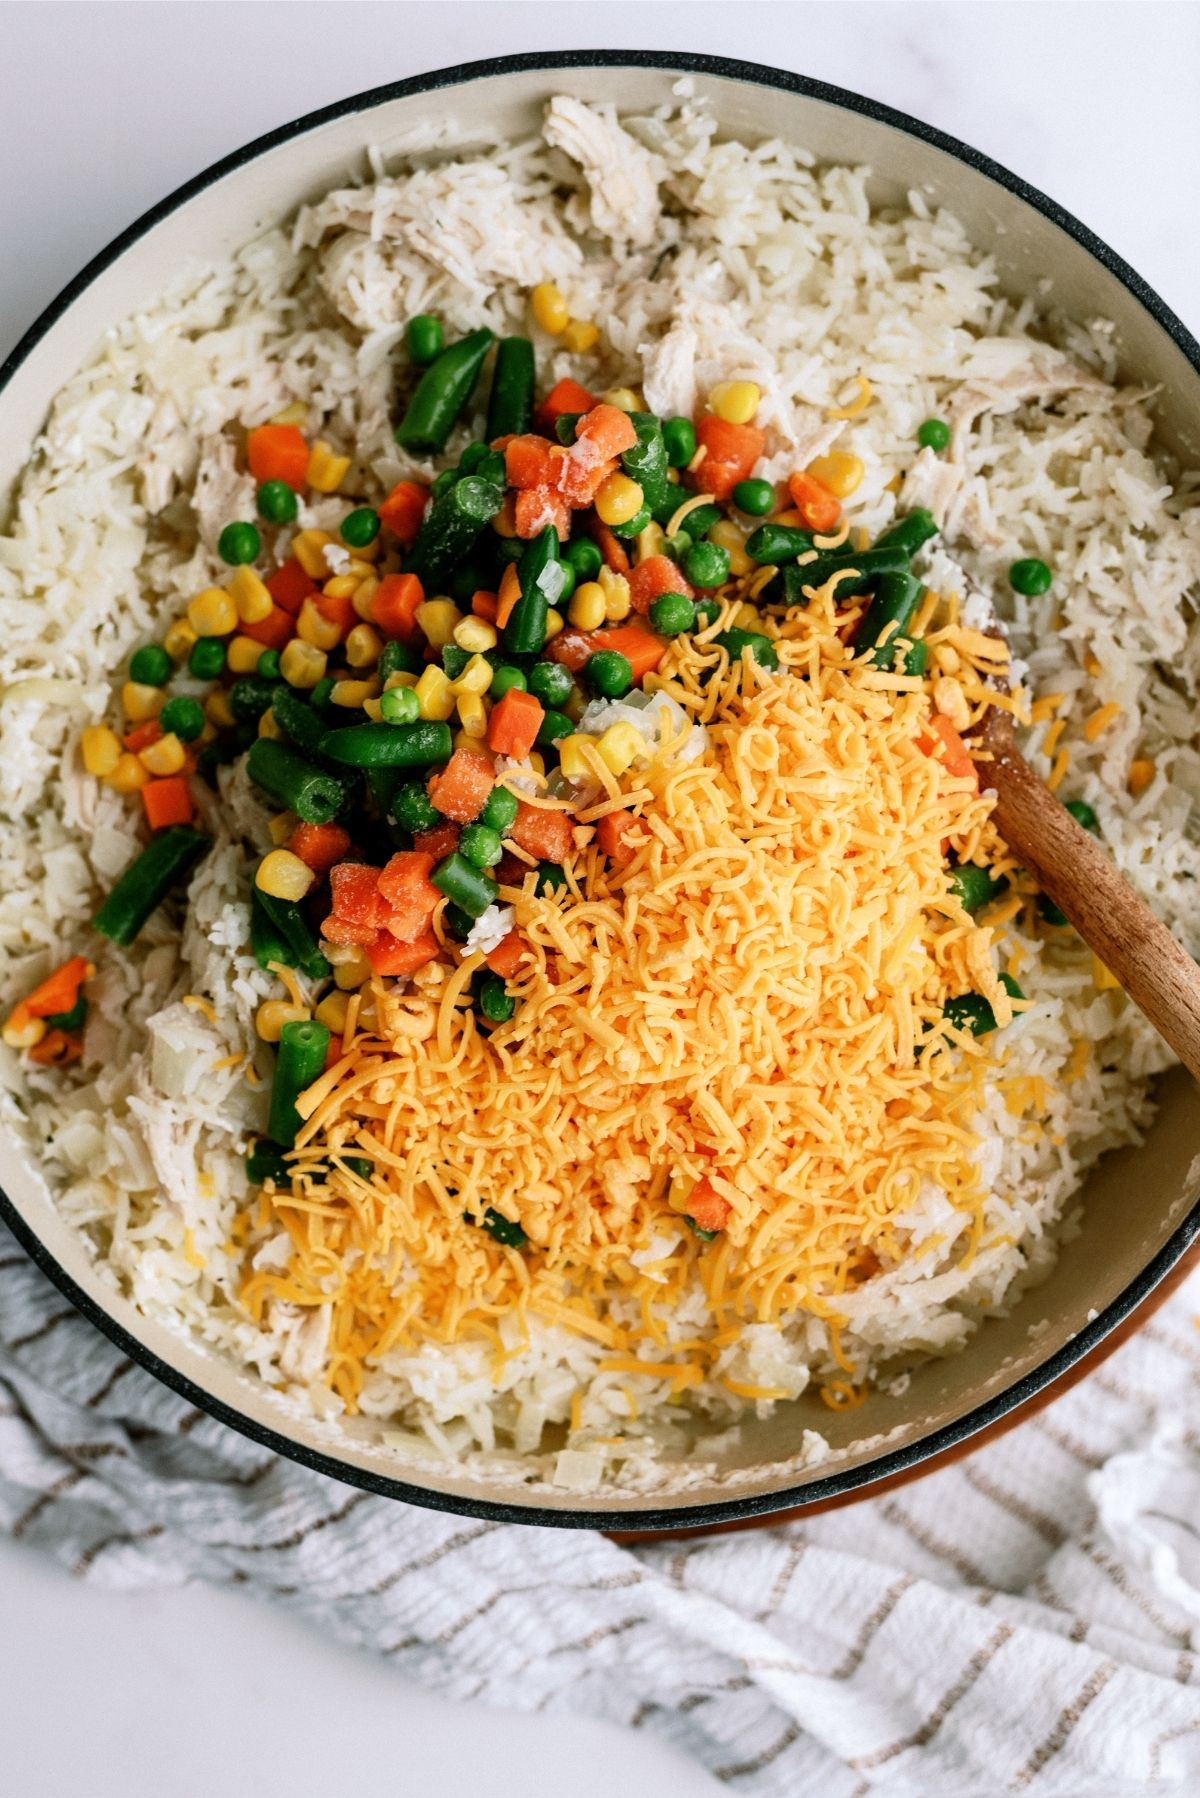 Add frozen vegetables and shredded cheese to pot for Creamy Chicken and Rice Casserole Skillet